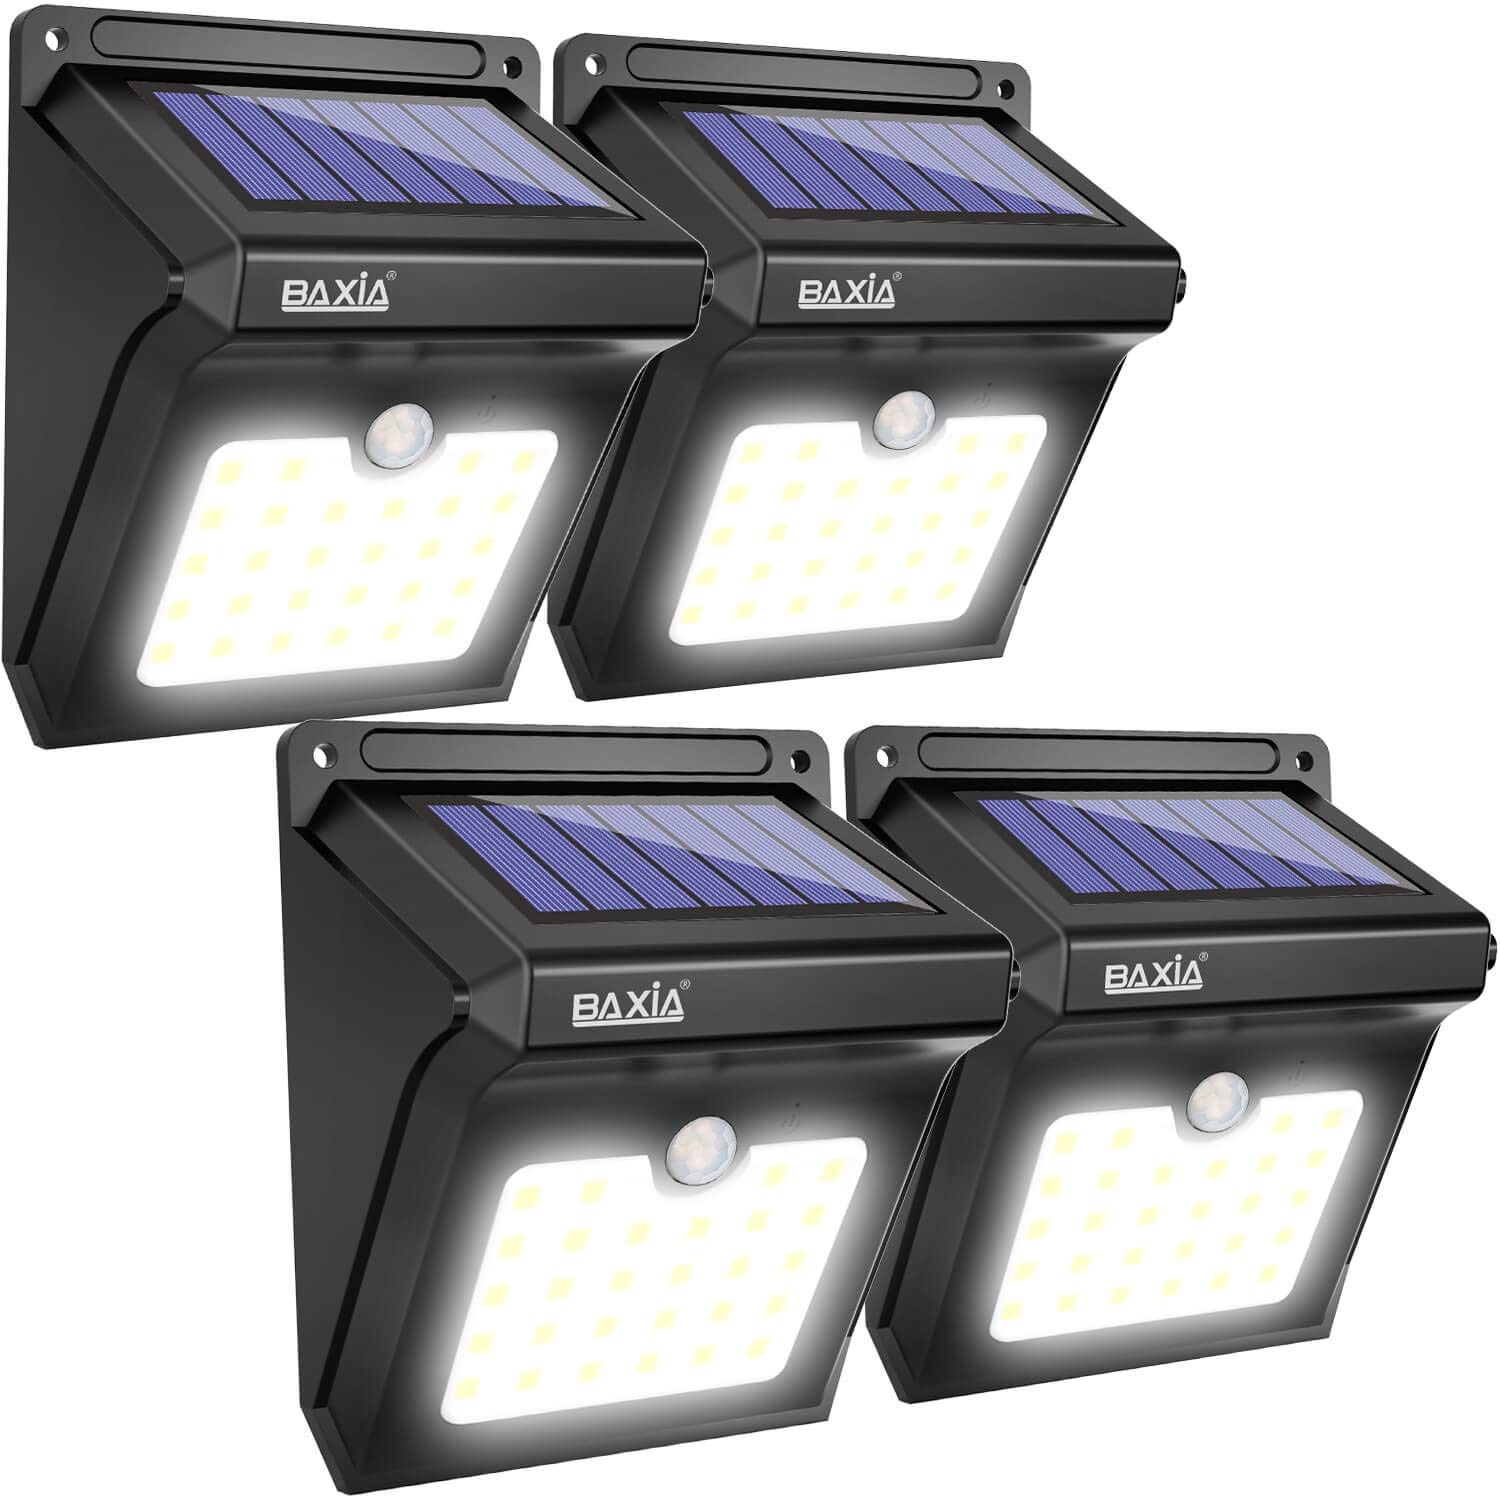 Best Outdoor Solar Lights In 2020 Android Central